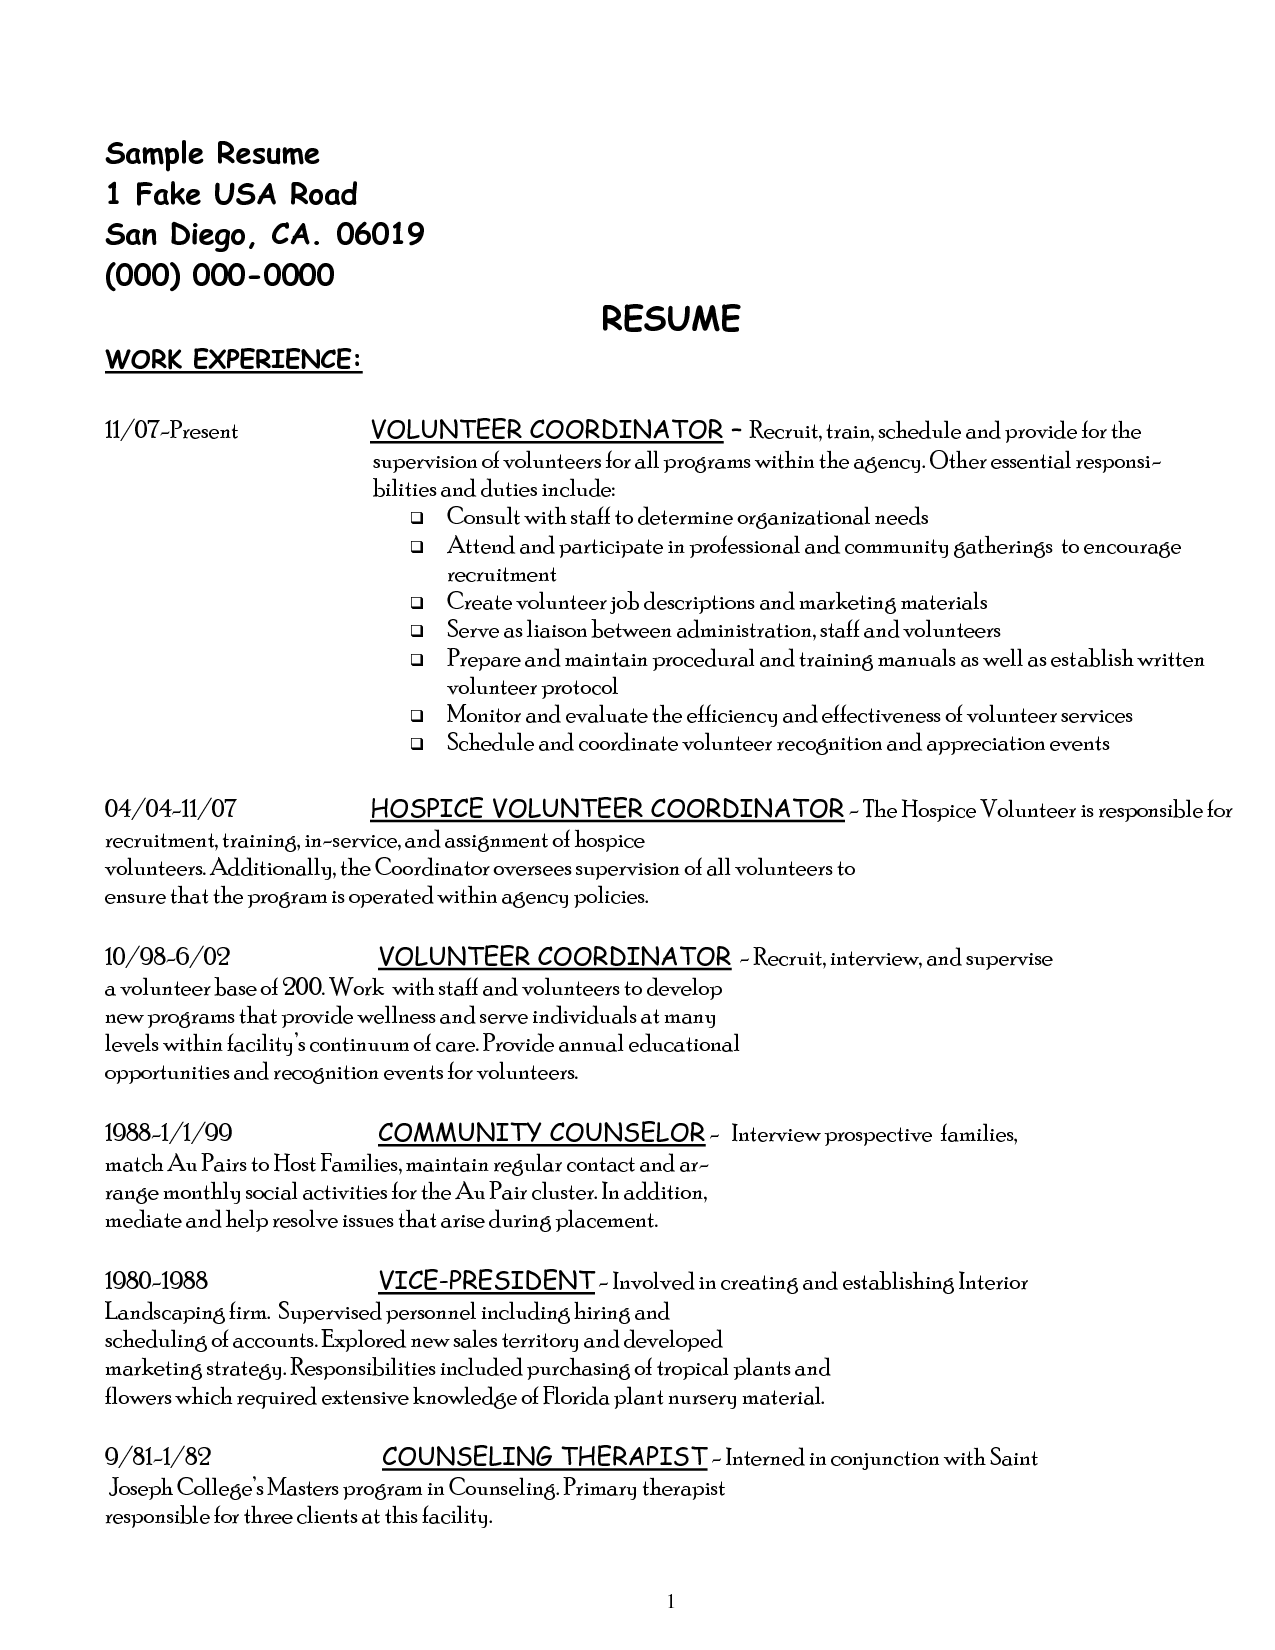 Social Work Resume Sample Volunteer Work On Resume Example Imagesvolunteer Resume Business